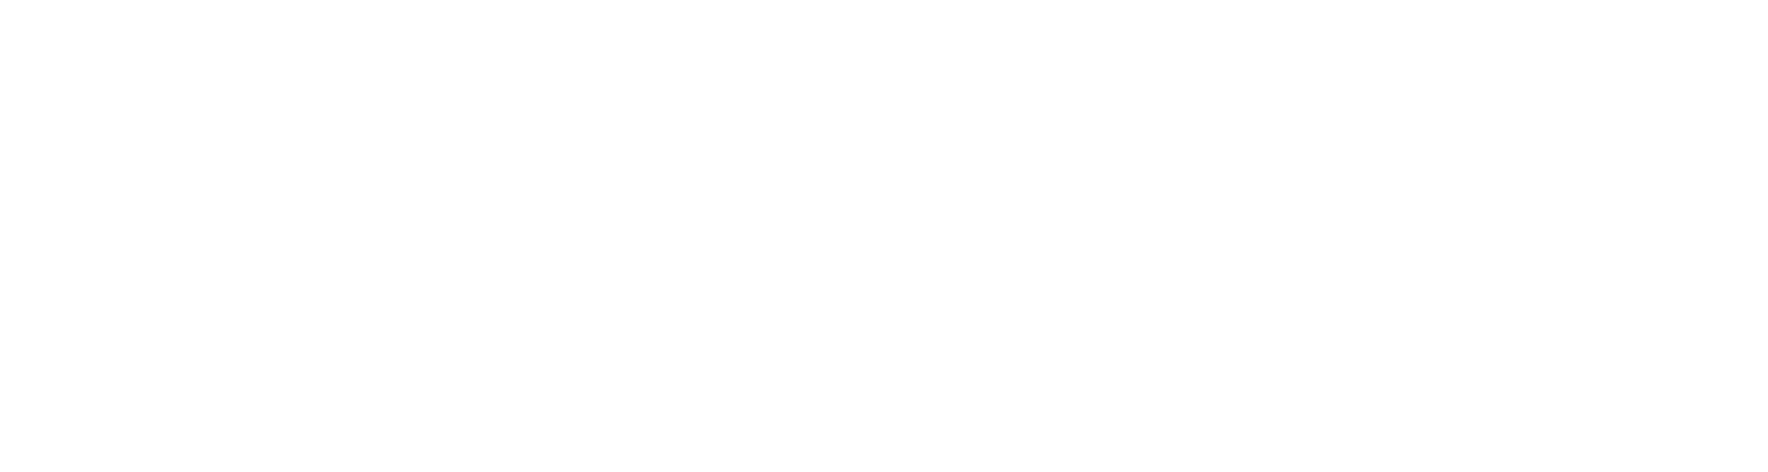 Building-Capital-Logo-White.png